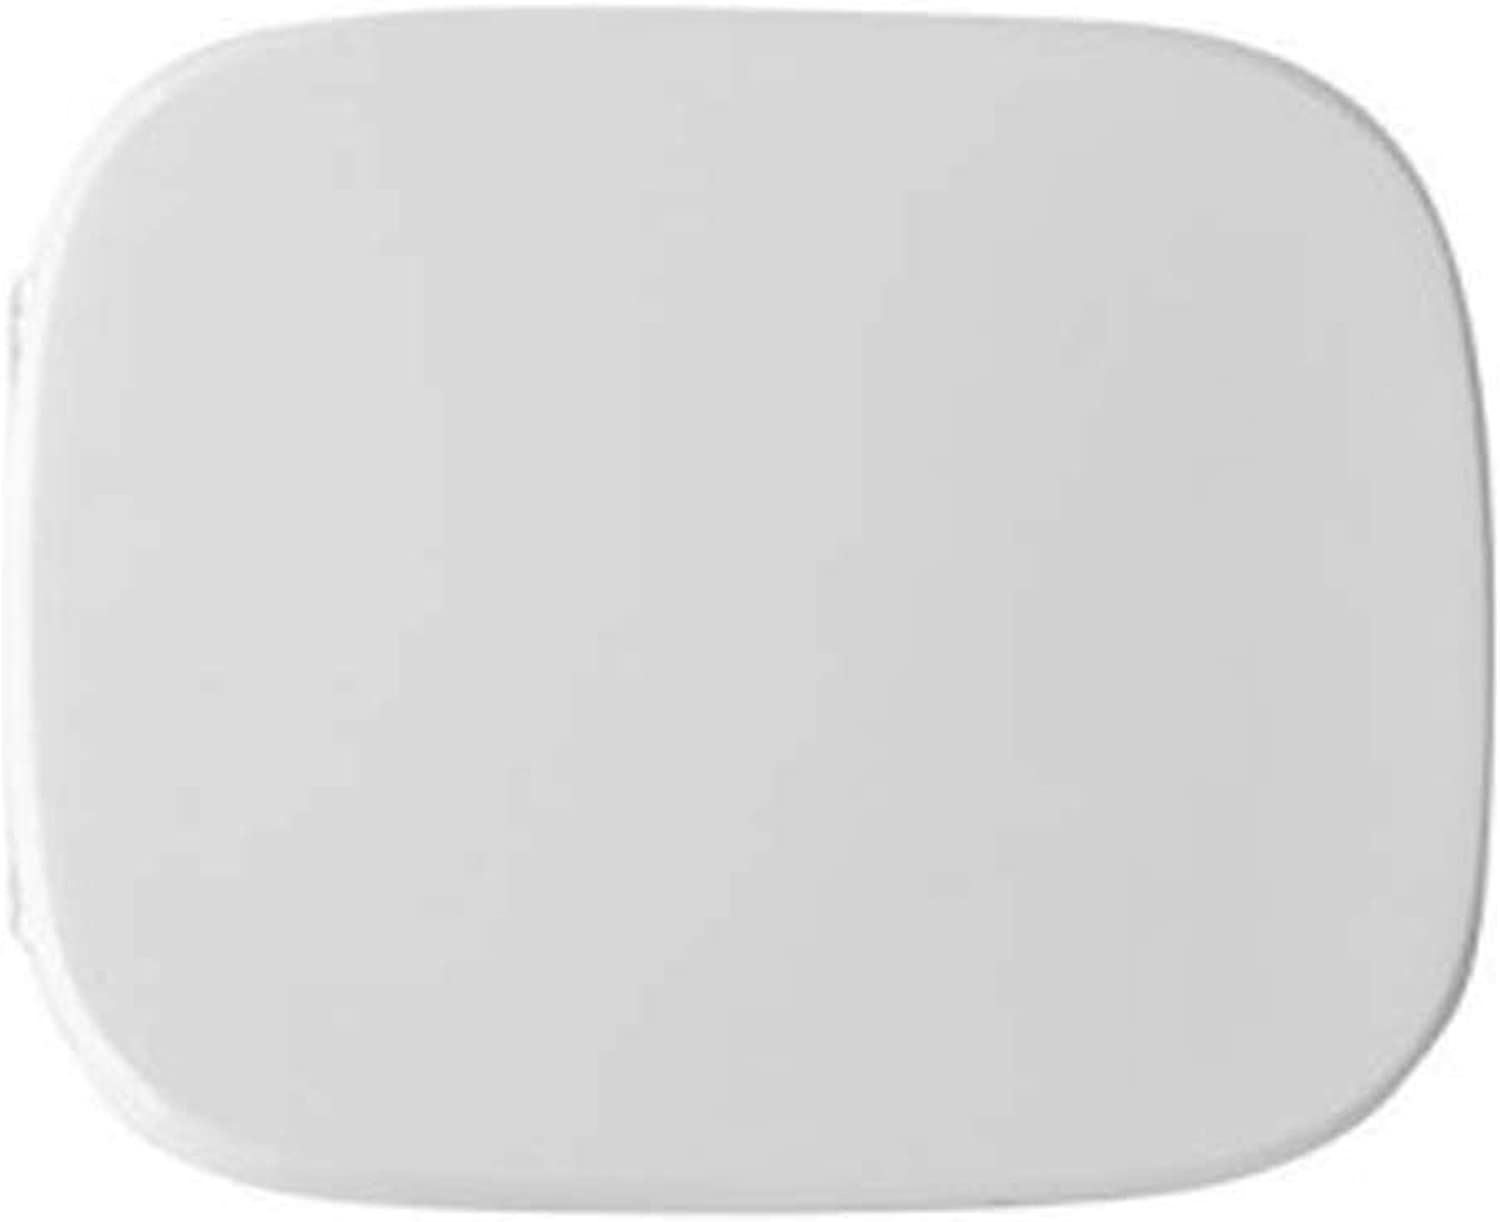 Toilet Seat for Ideal Standard Vase 21?Series